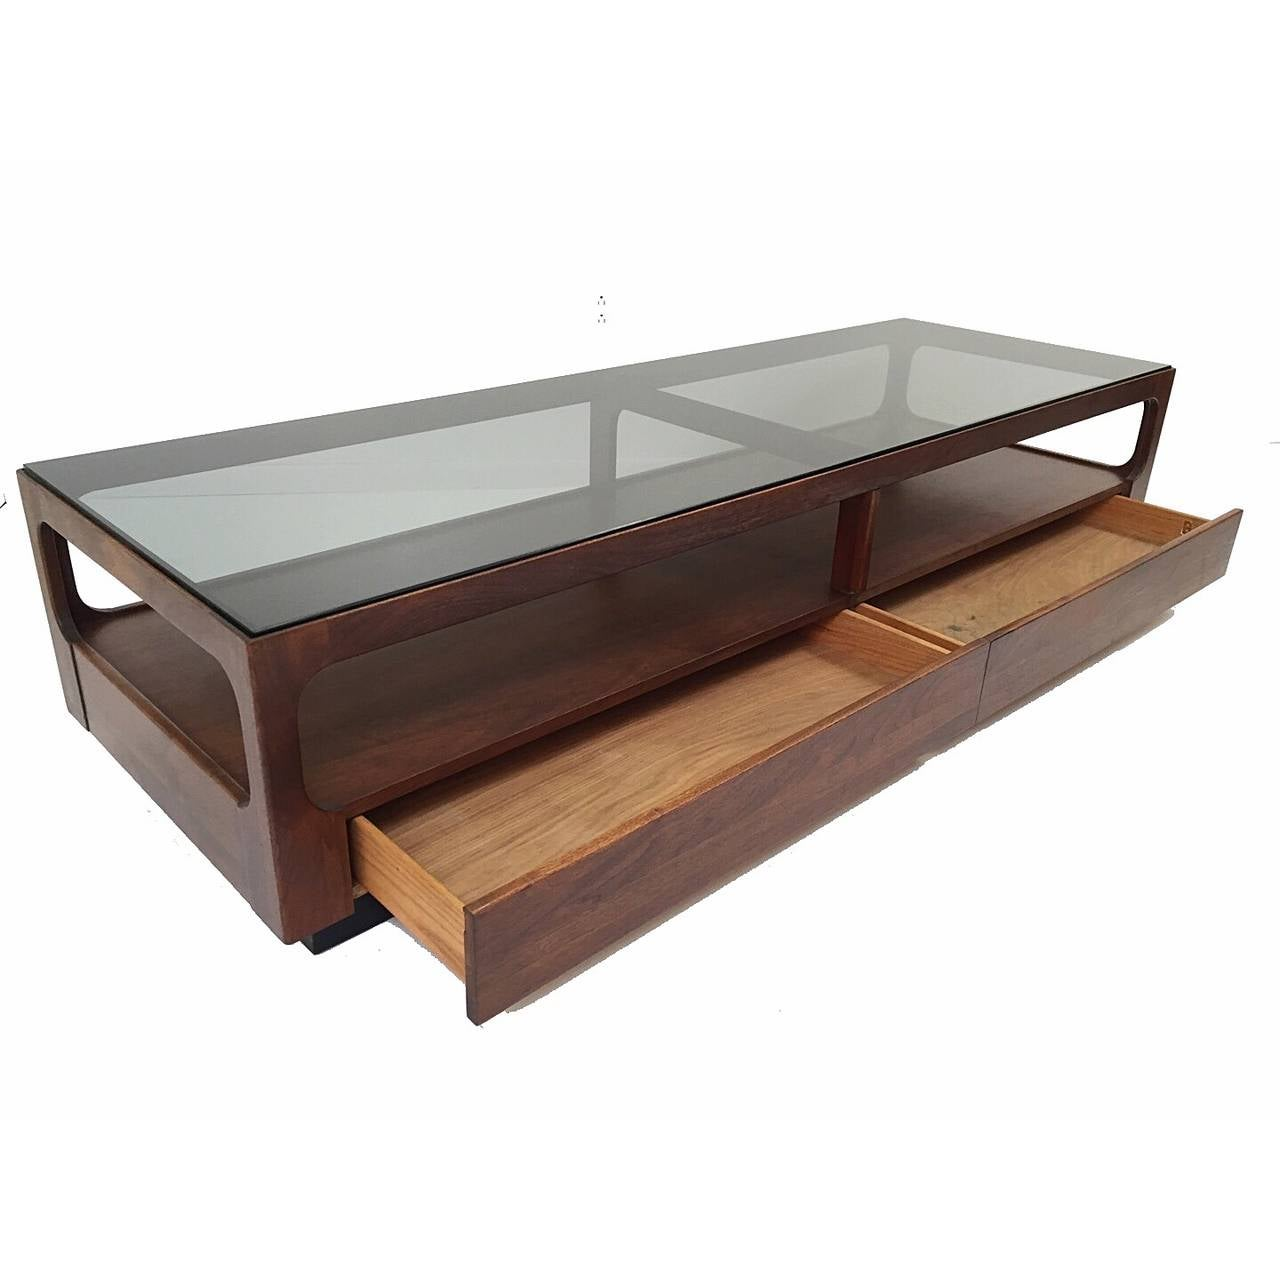 Brown Saltman Walnut And Smoked Glass Coffee Table With Storage By John Keal Image 2